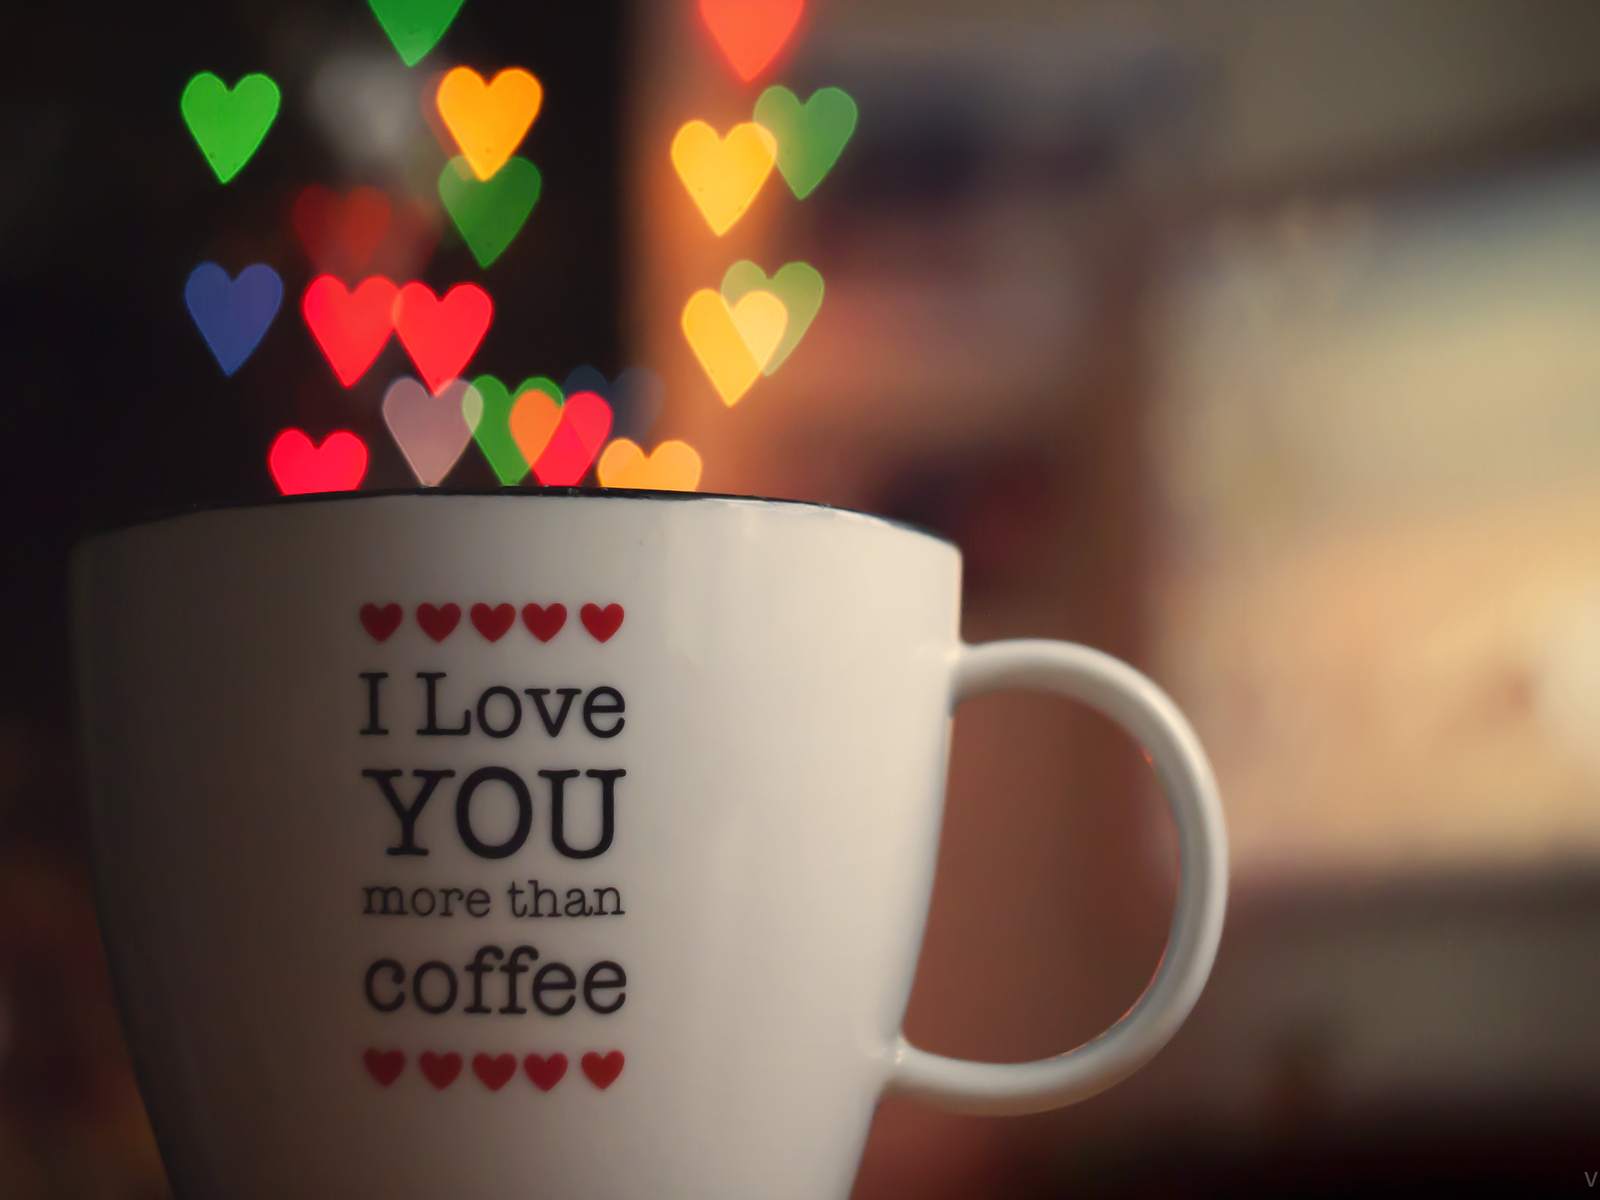 I Love You Mom Coffee Cup Wallpapersimagesphotoswallpapers 1600x1200